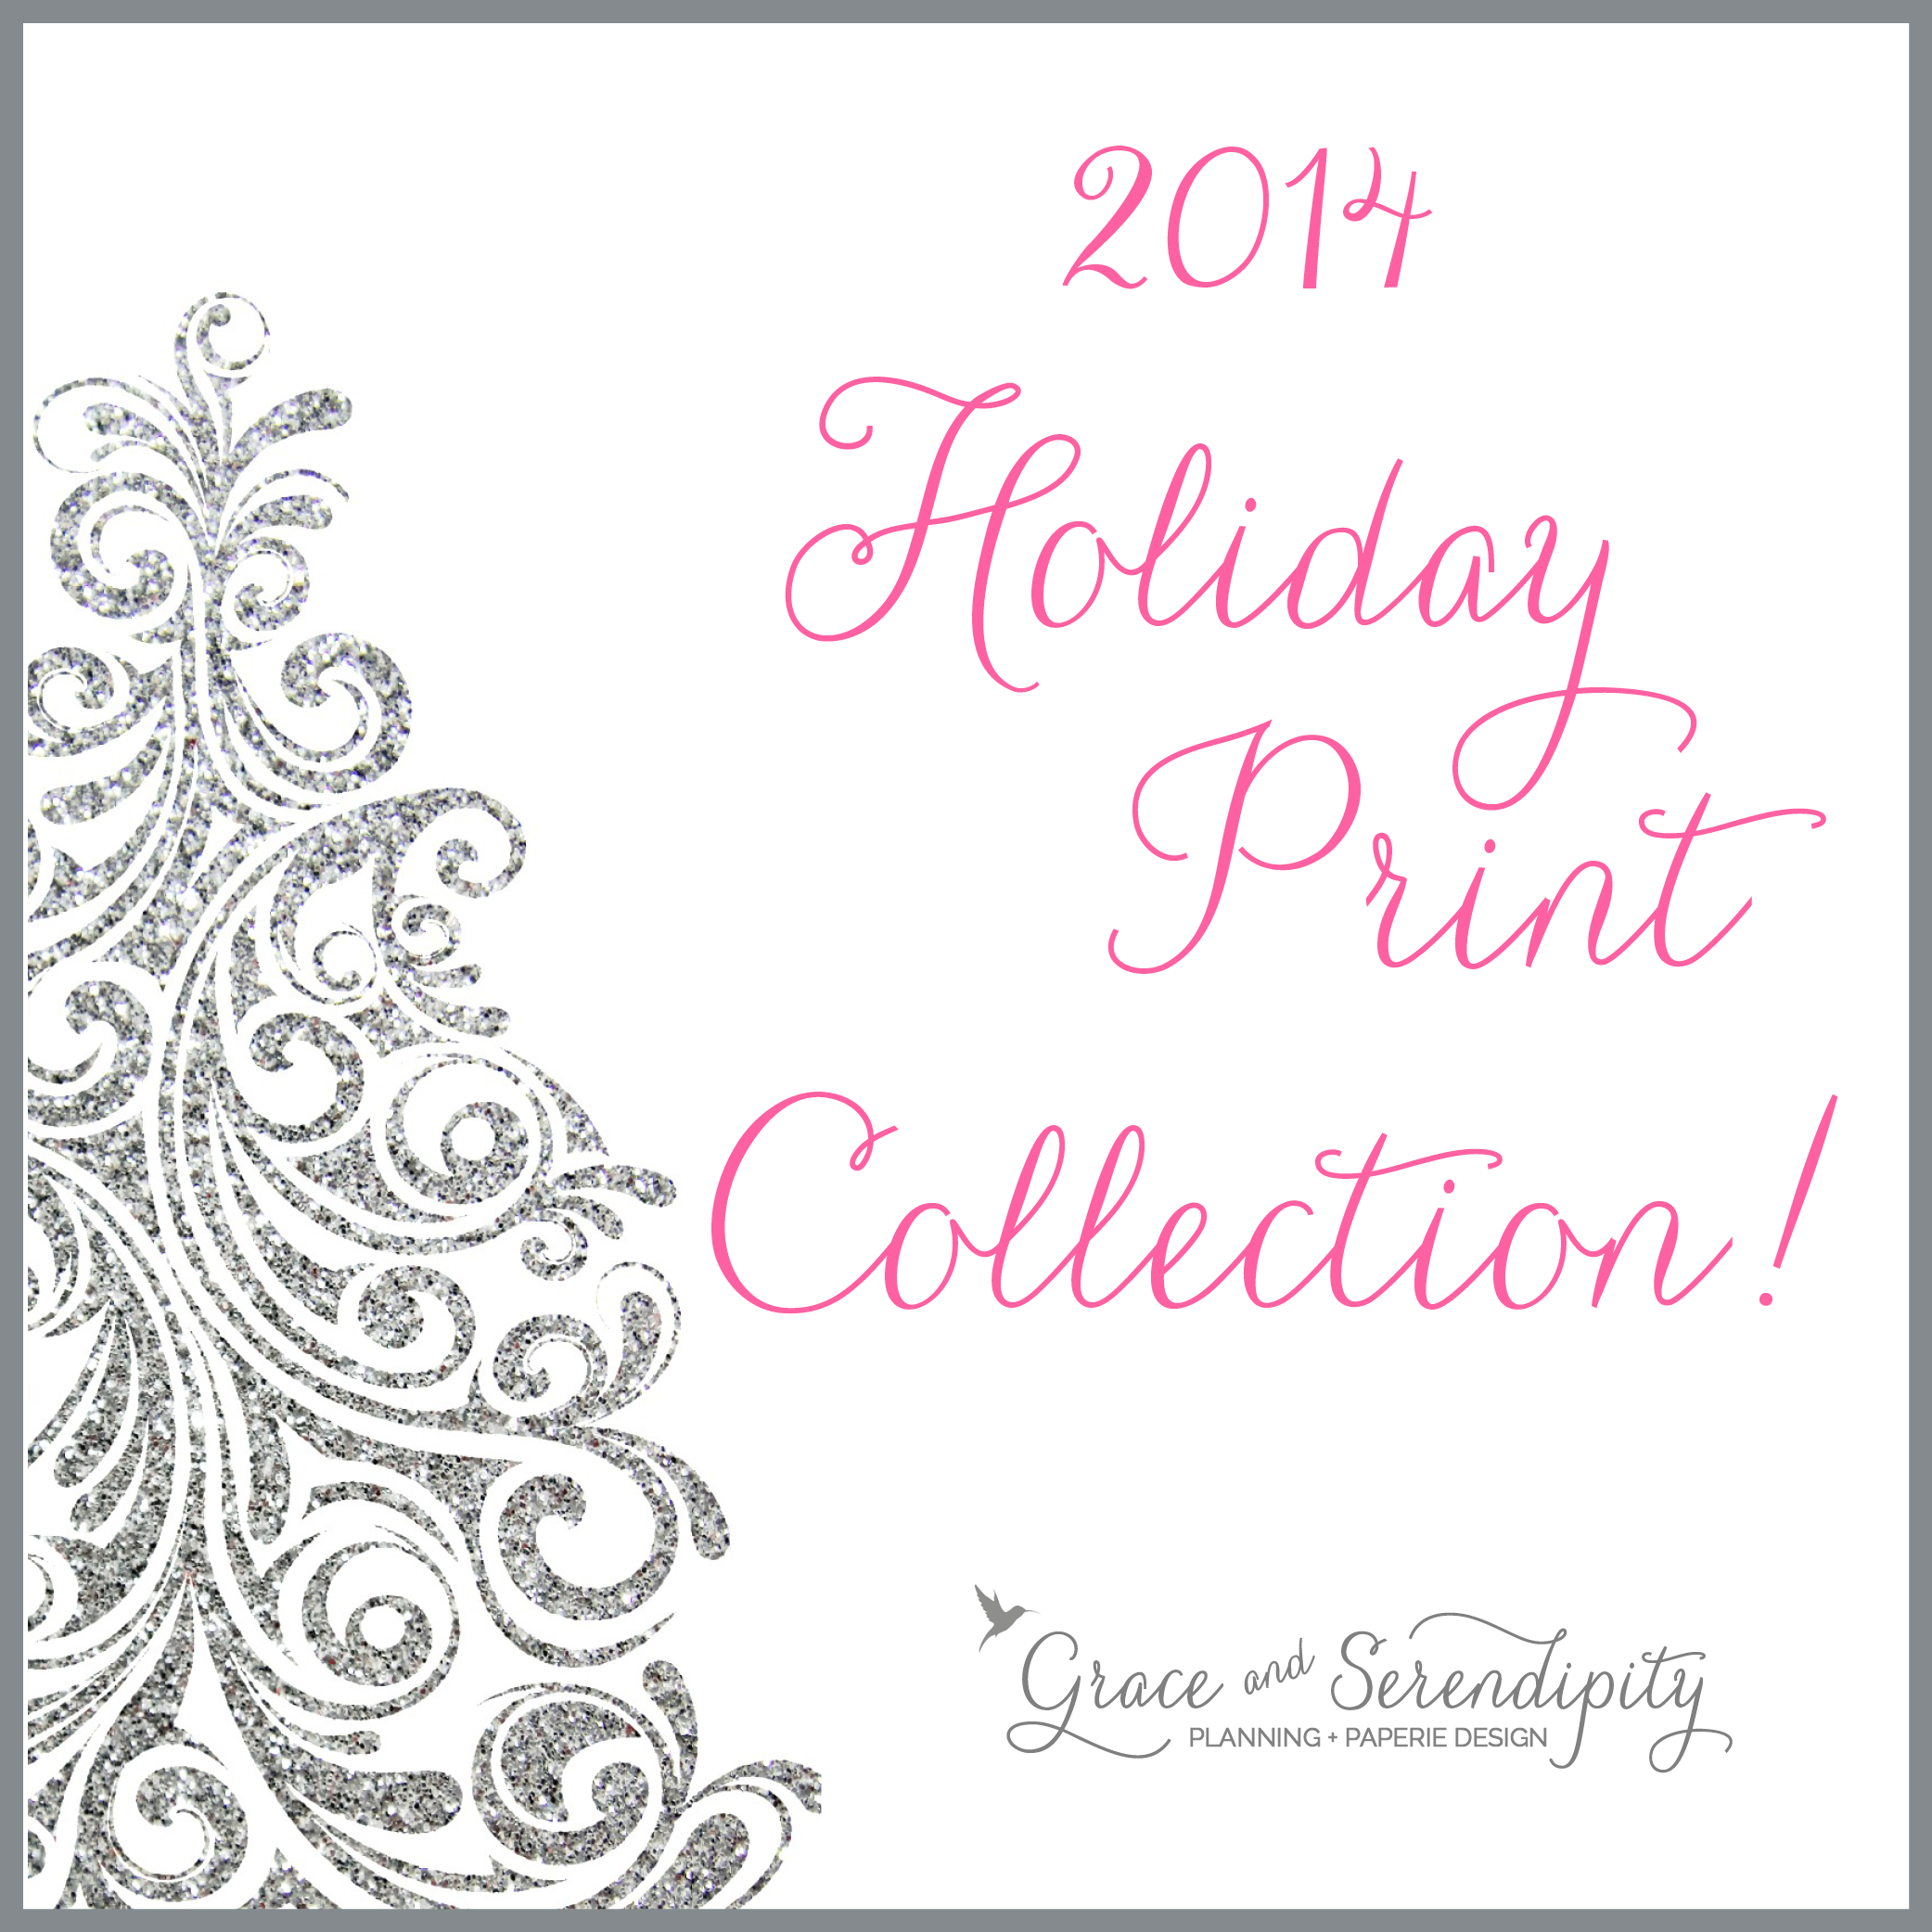 grace and serendipity - 2014 holiday print collection